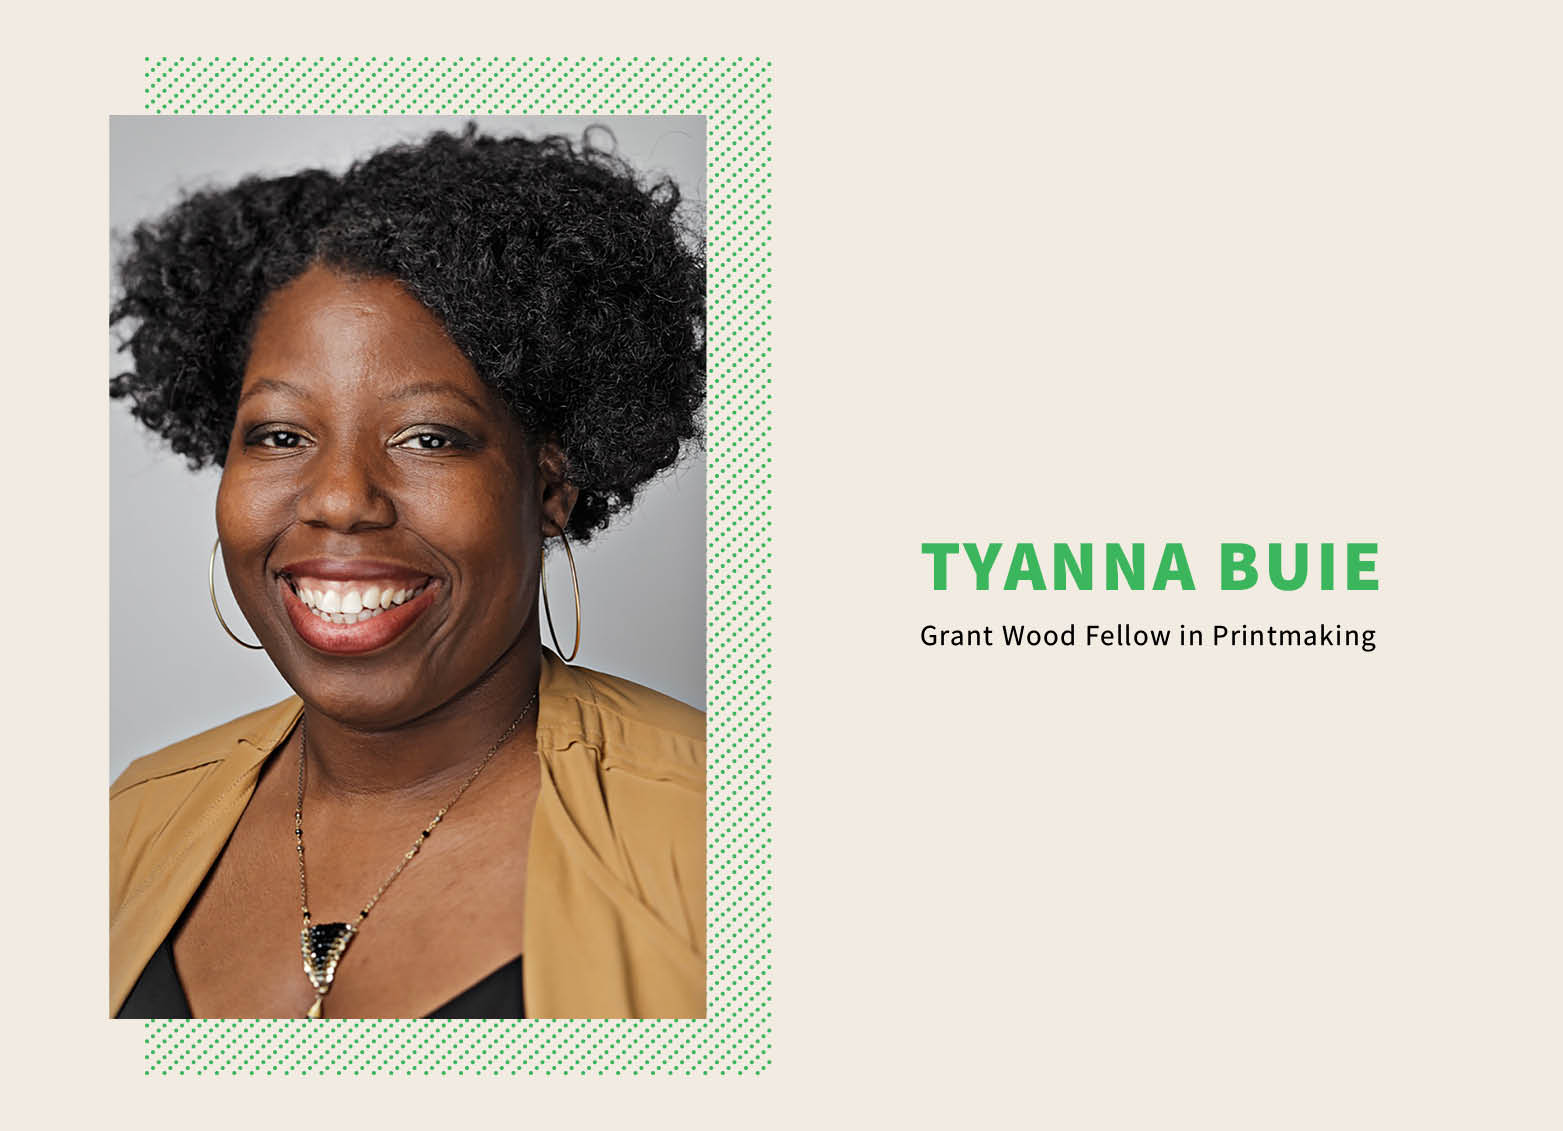 Talk by Tyanna Buie, Grant Wood Fellow in Printmaking